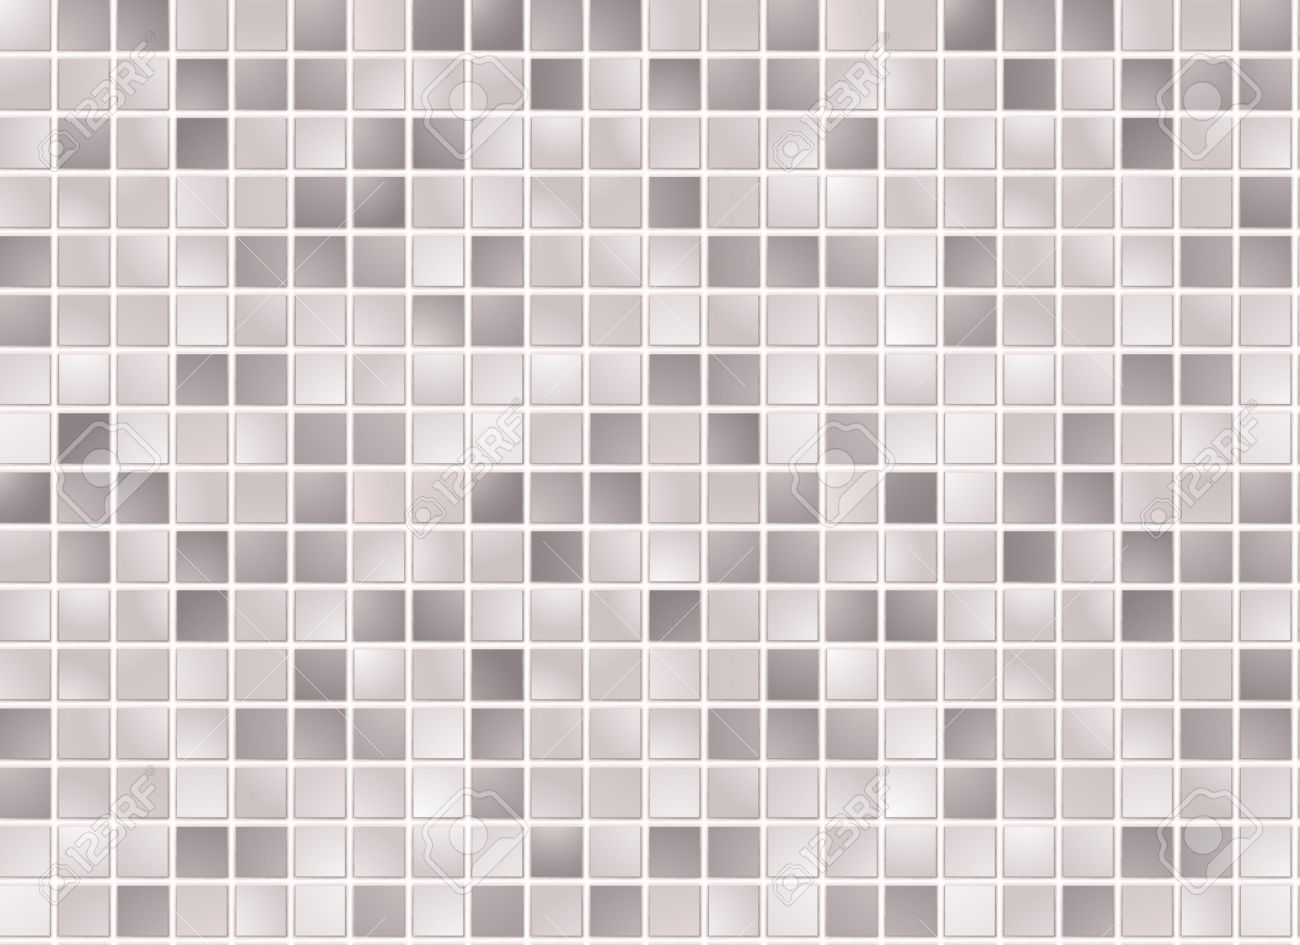 Seamless Kitchen Flooring Seamless Grey Square Tiles Pattern Royalty Free Cliparts Vectors